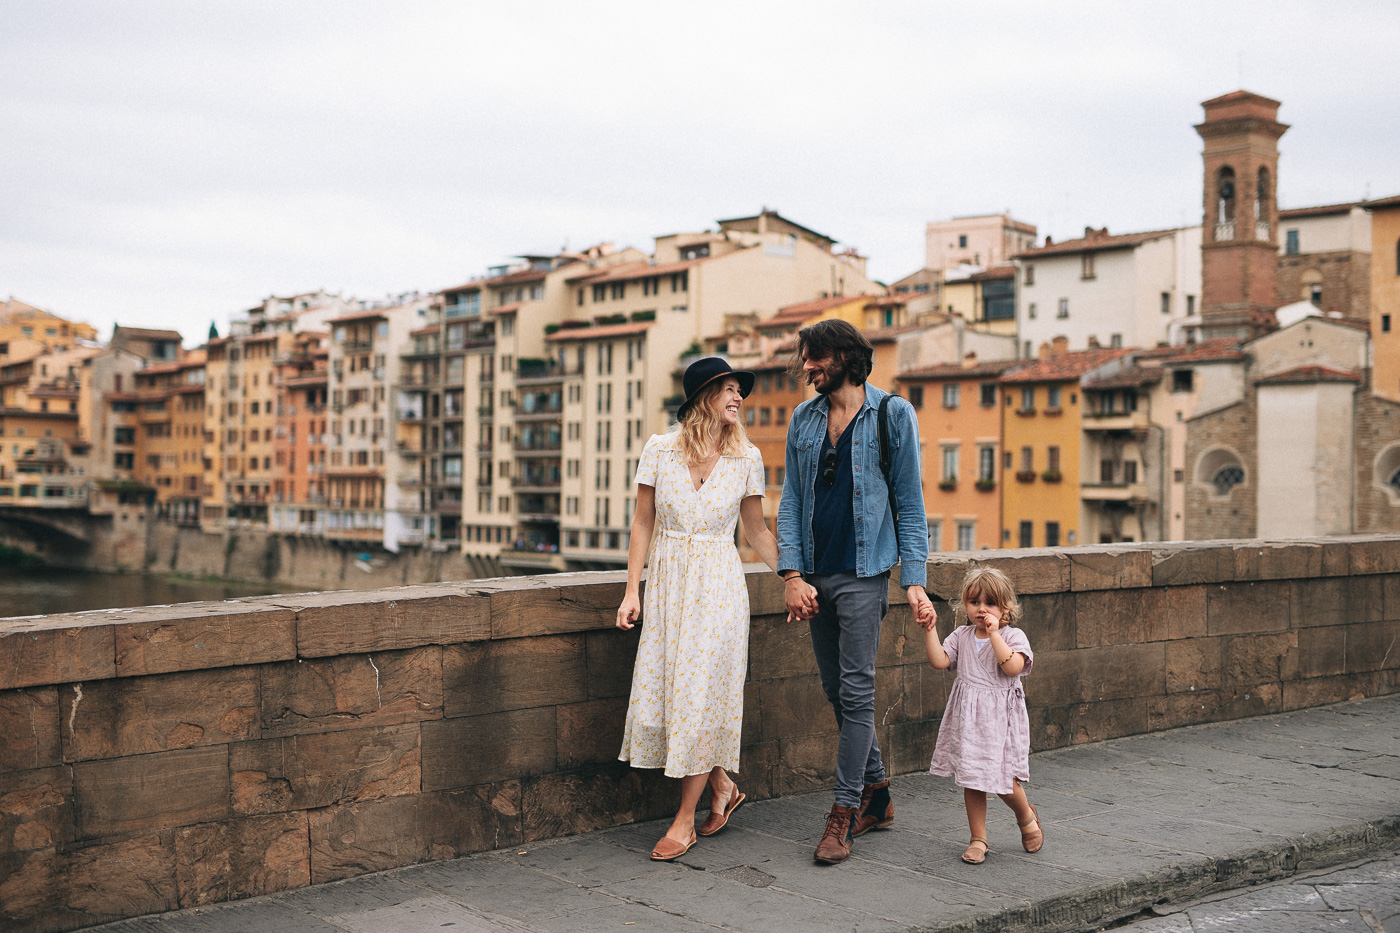 //euphoriawedding.com/wp-content/uploads/2019/11/Family-Photoshoot_Florence_WEB-180.jpg